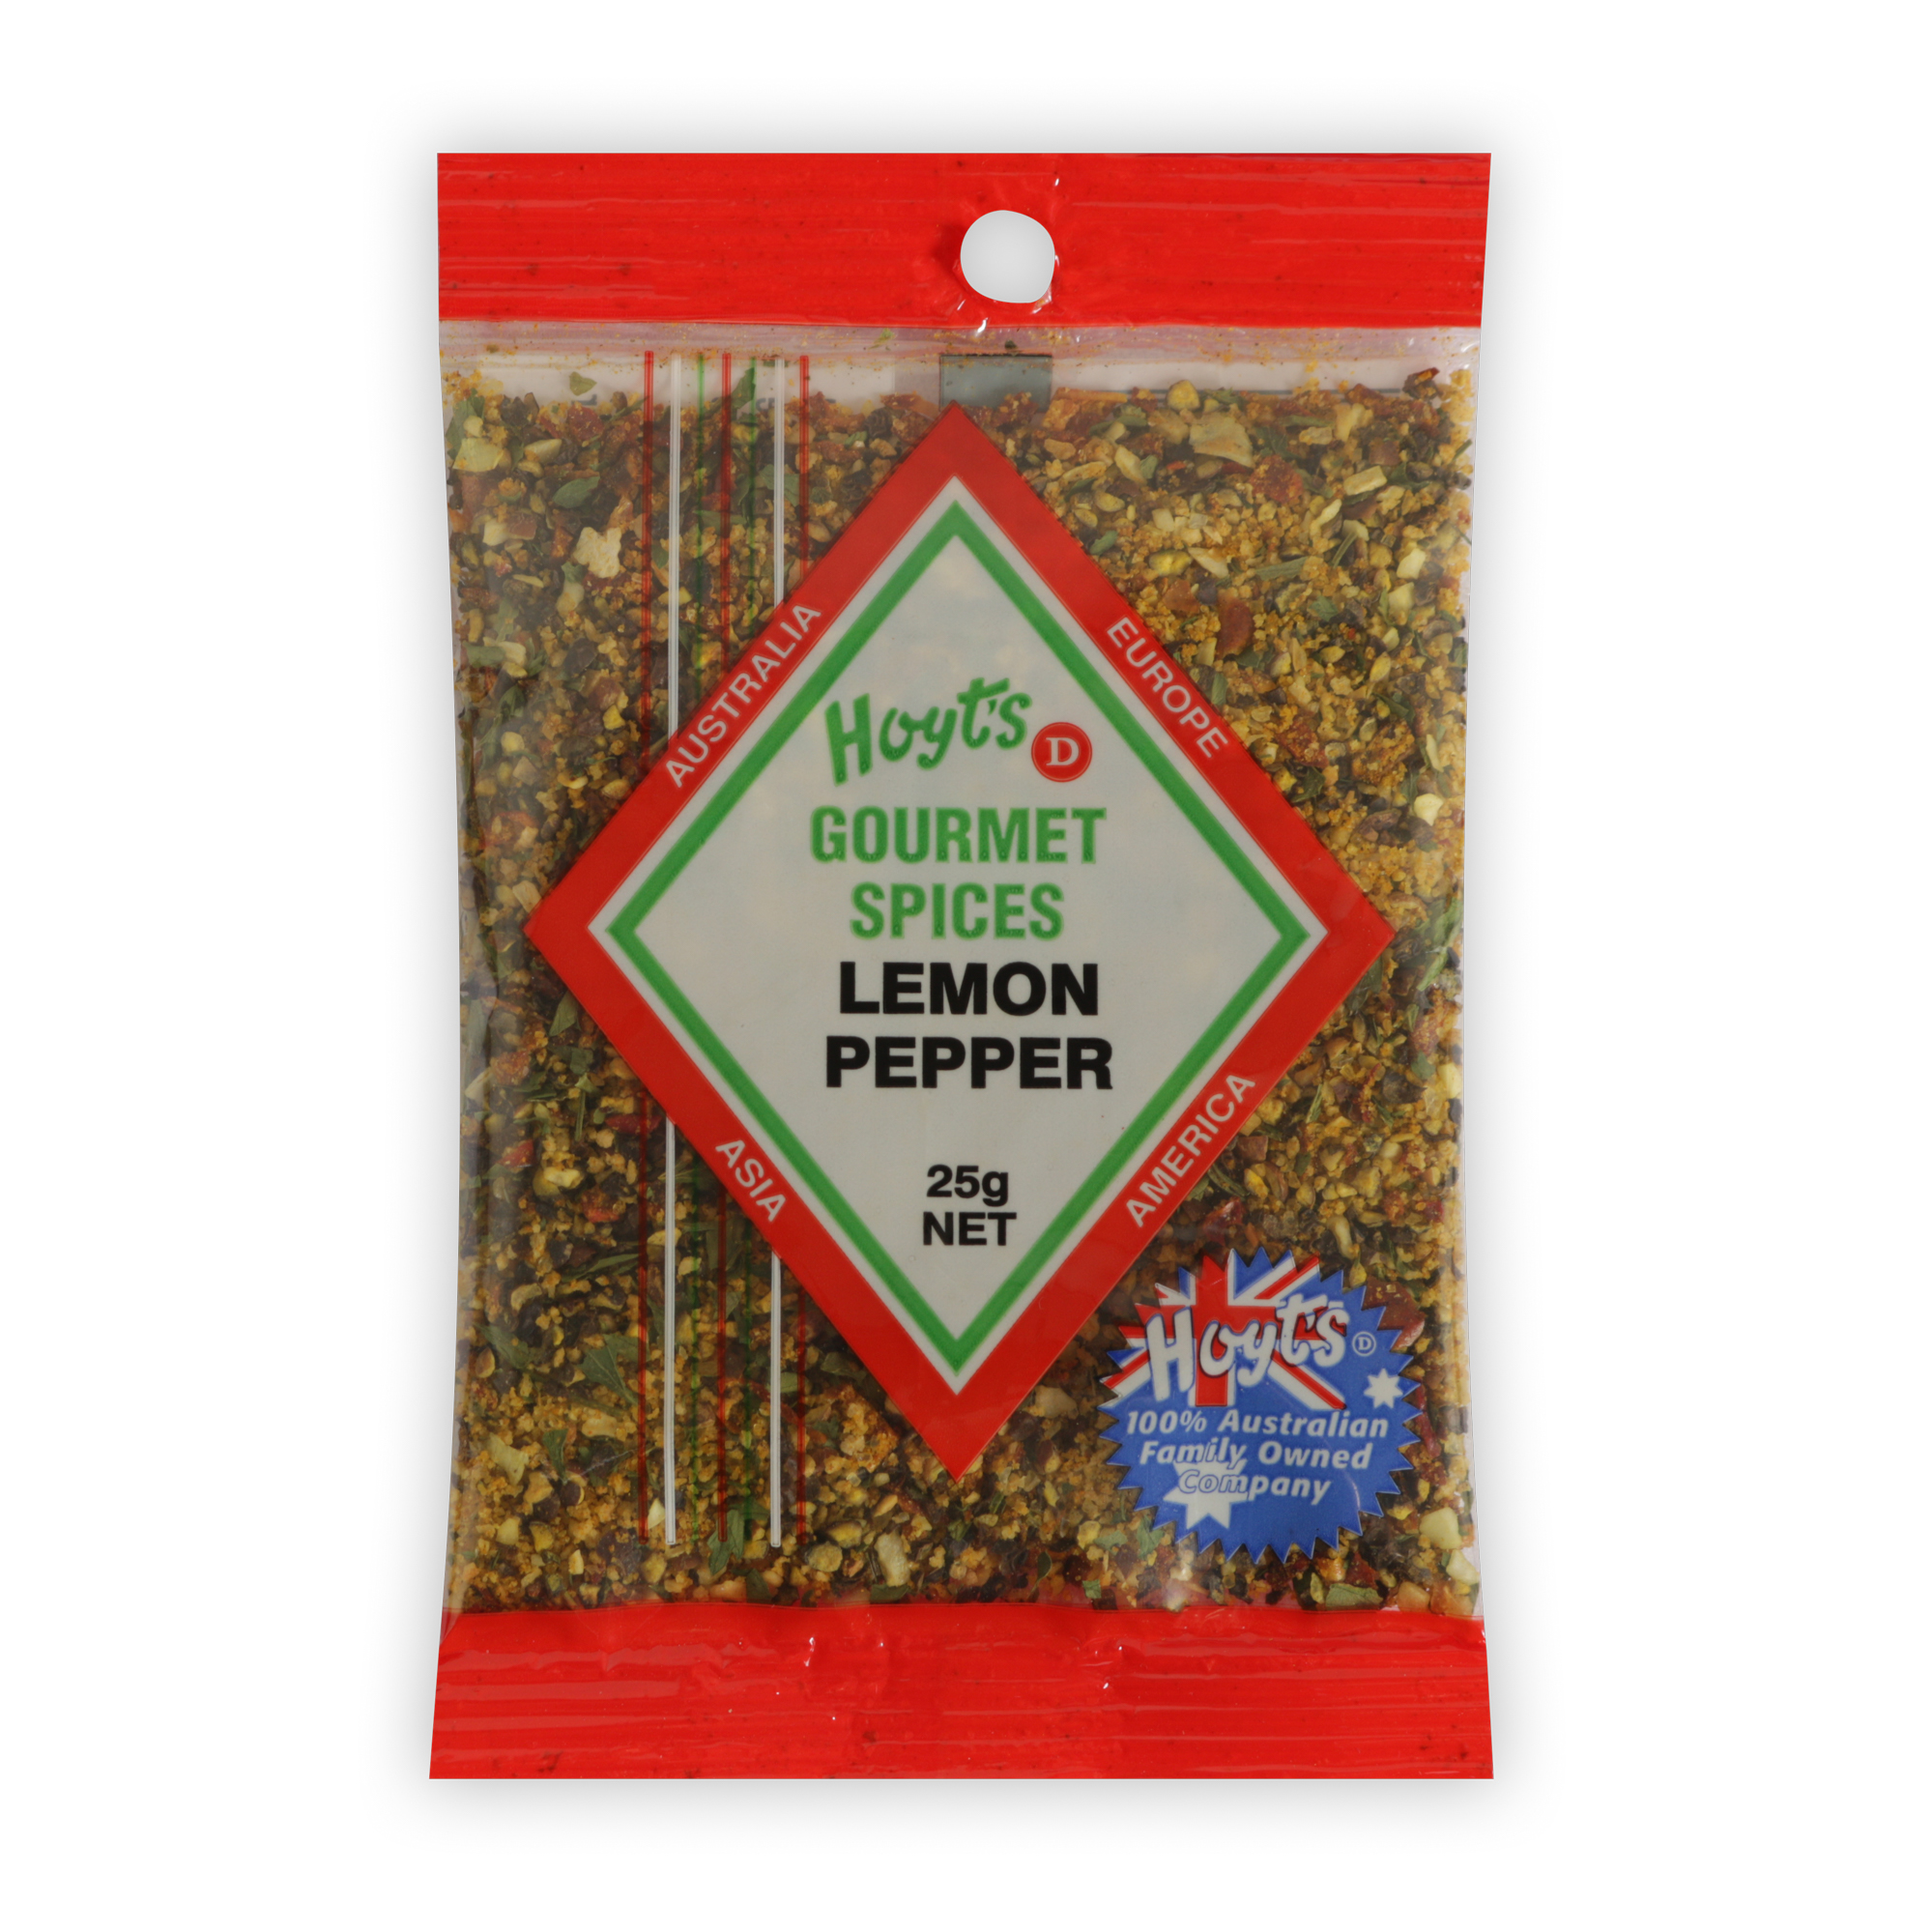 Hoyts Gourmet Lemon Pepper 25g - 9300725010300 1